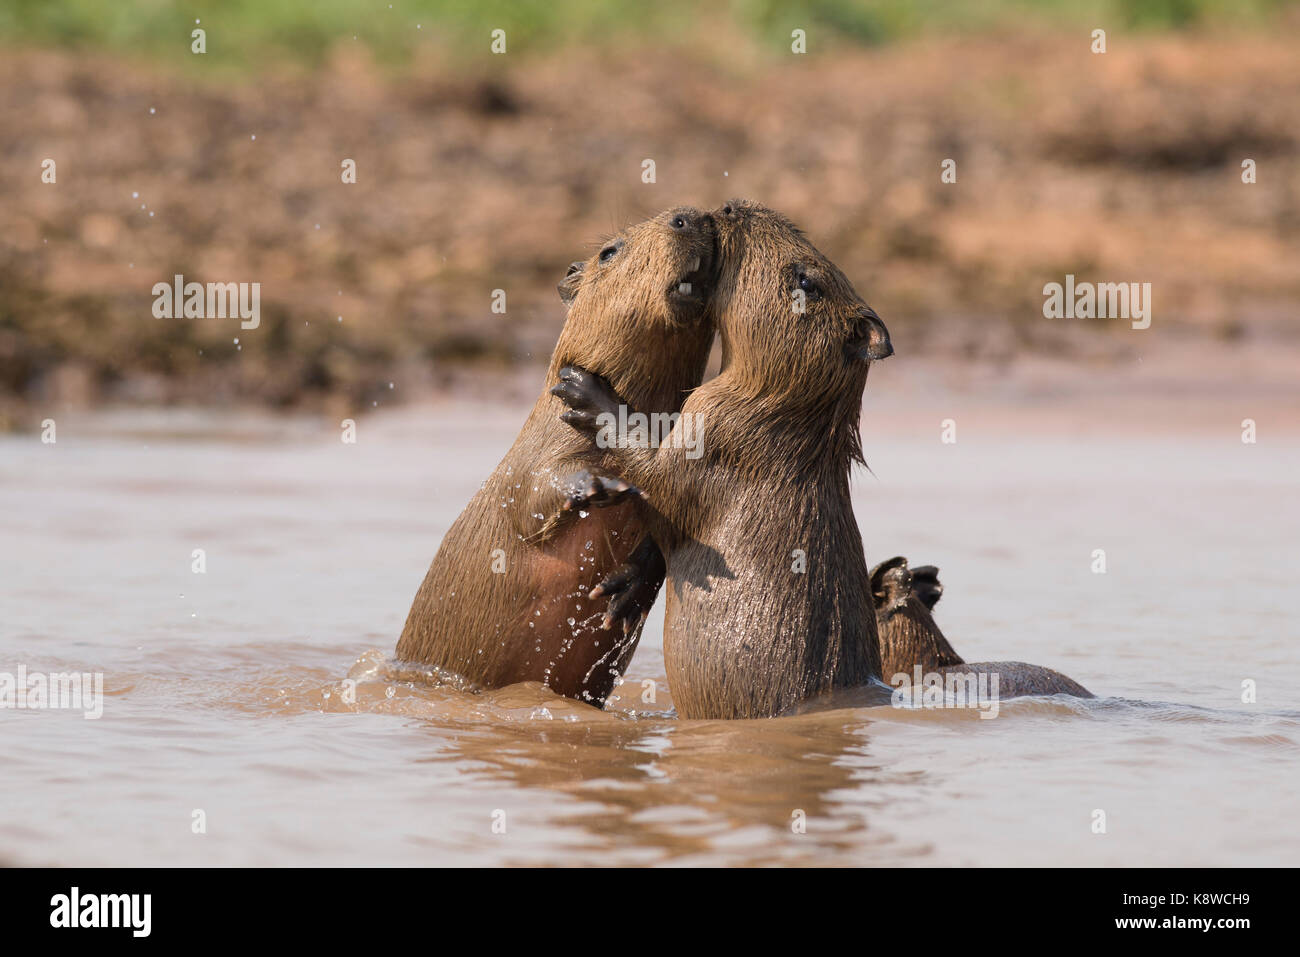 Baby Capybaras playing on the water, in North Pantanal, Brazil Stock Photo